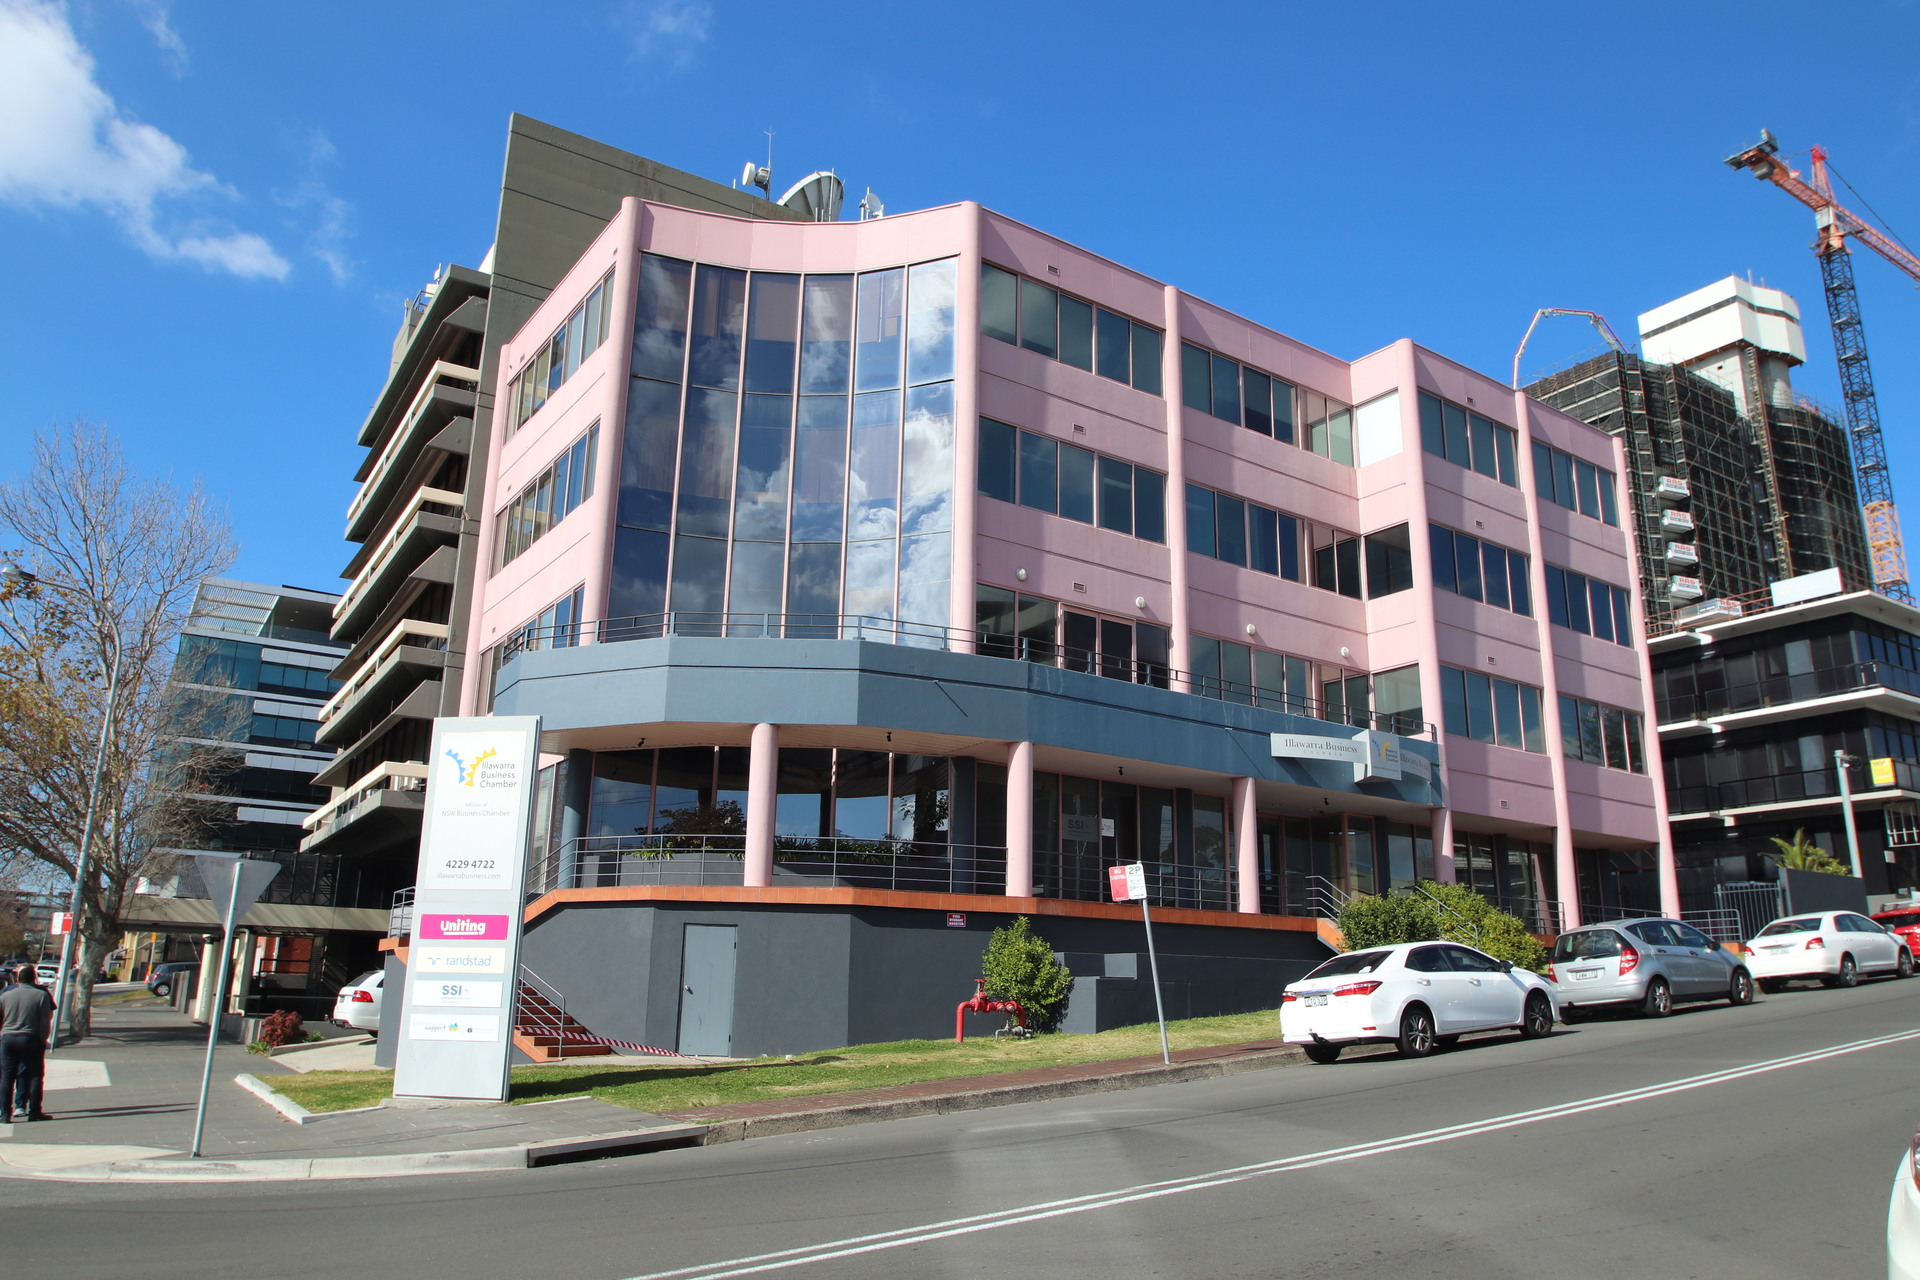 B Grade Office in Central CBD location ready to move in!